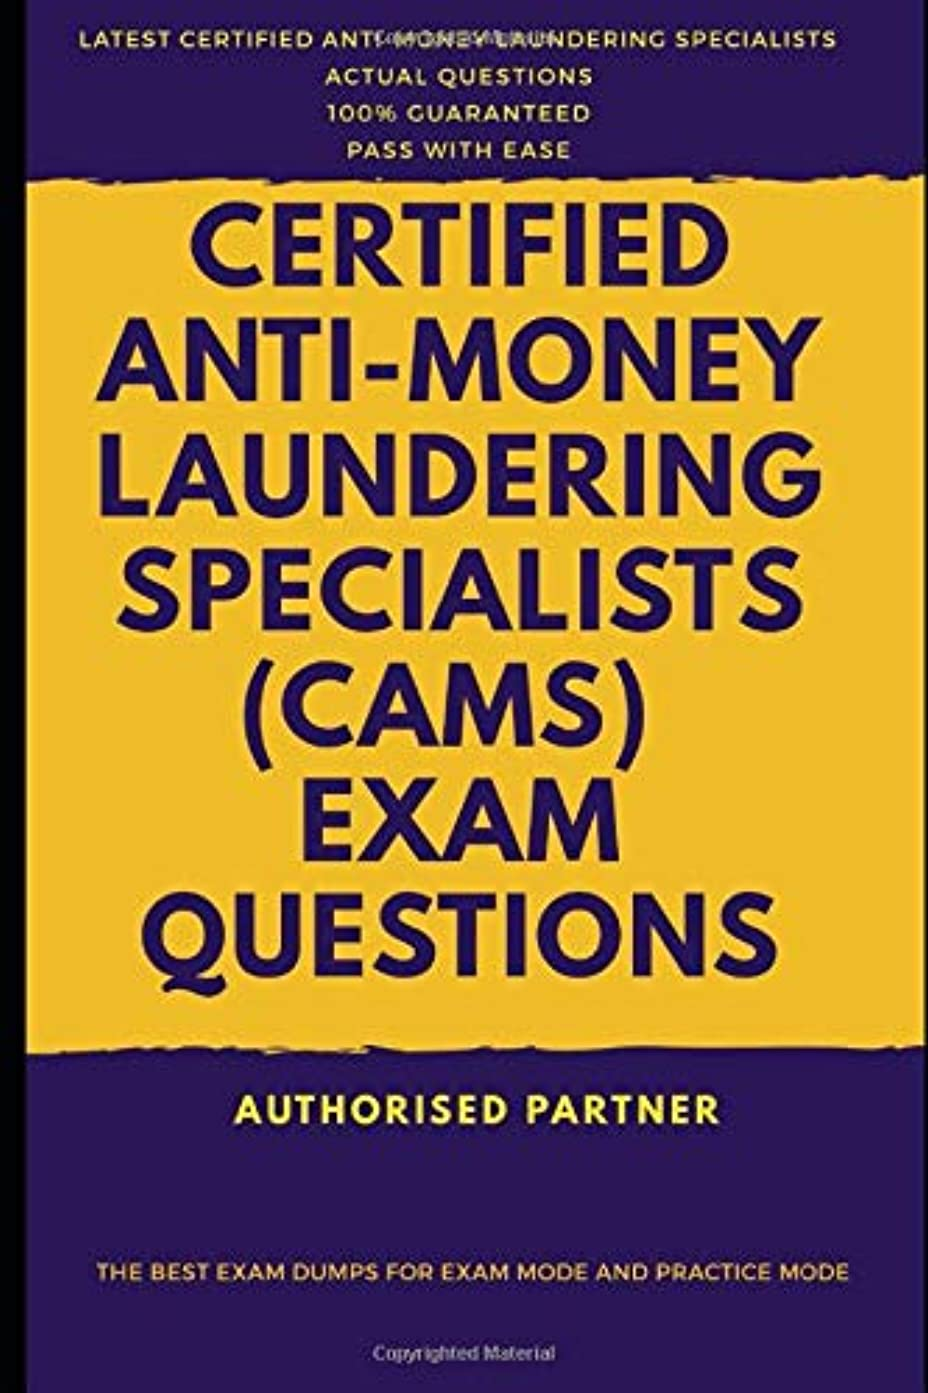 シガレットダイヤル感心するCertified Anti-Money Laundering Specialists (CAMS) Exam Questions